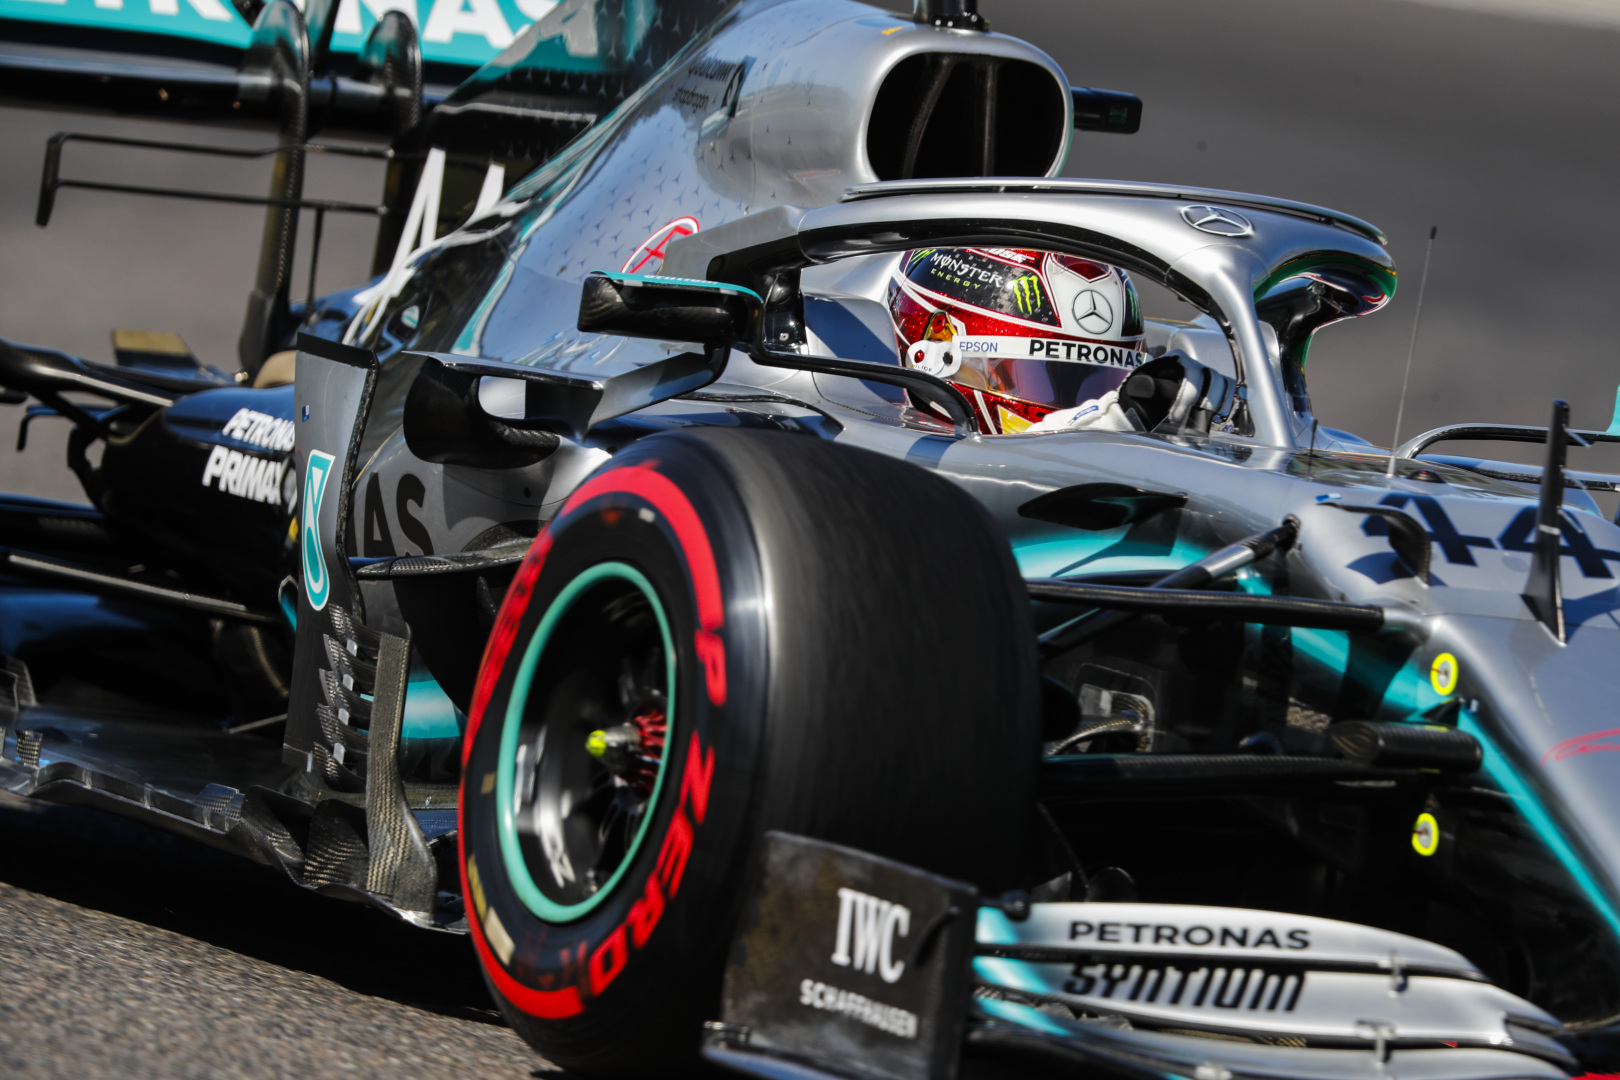 Teams reject 2020 F1 tyres with unanimous vote - Speedcafe